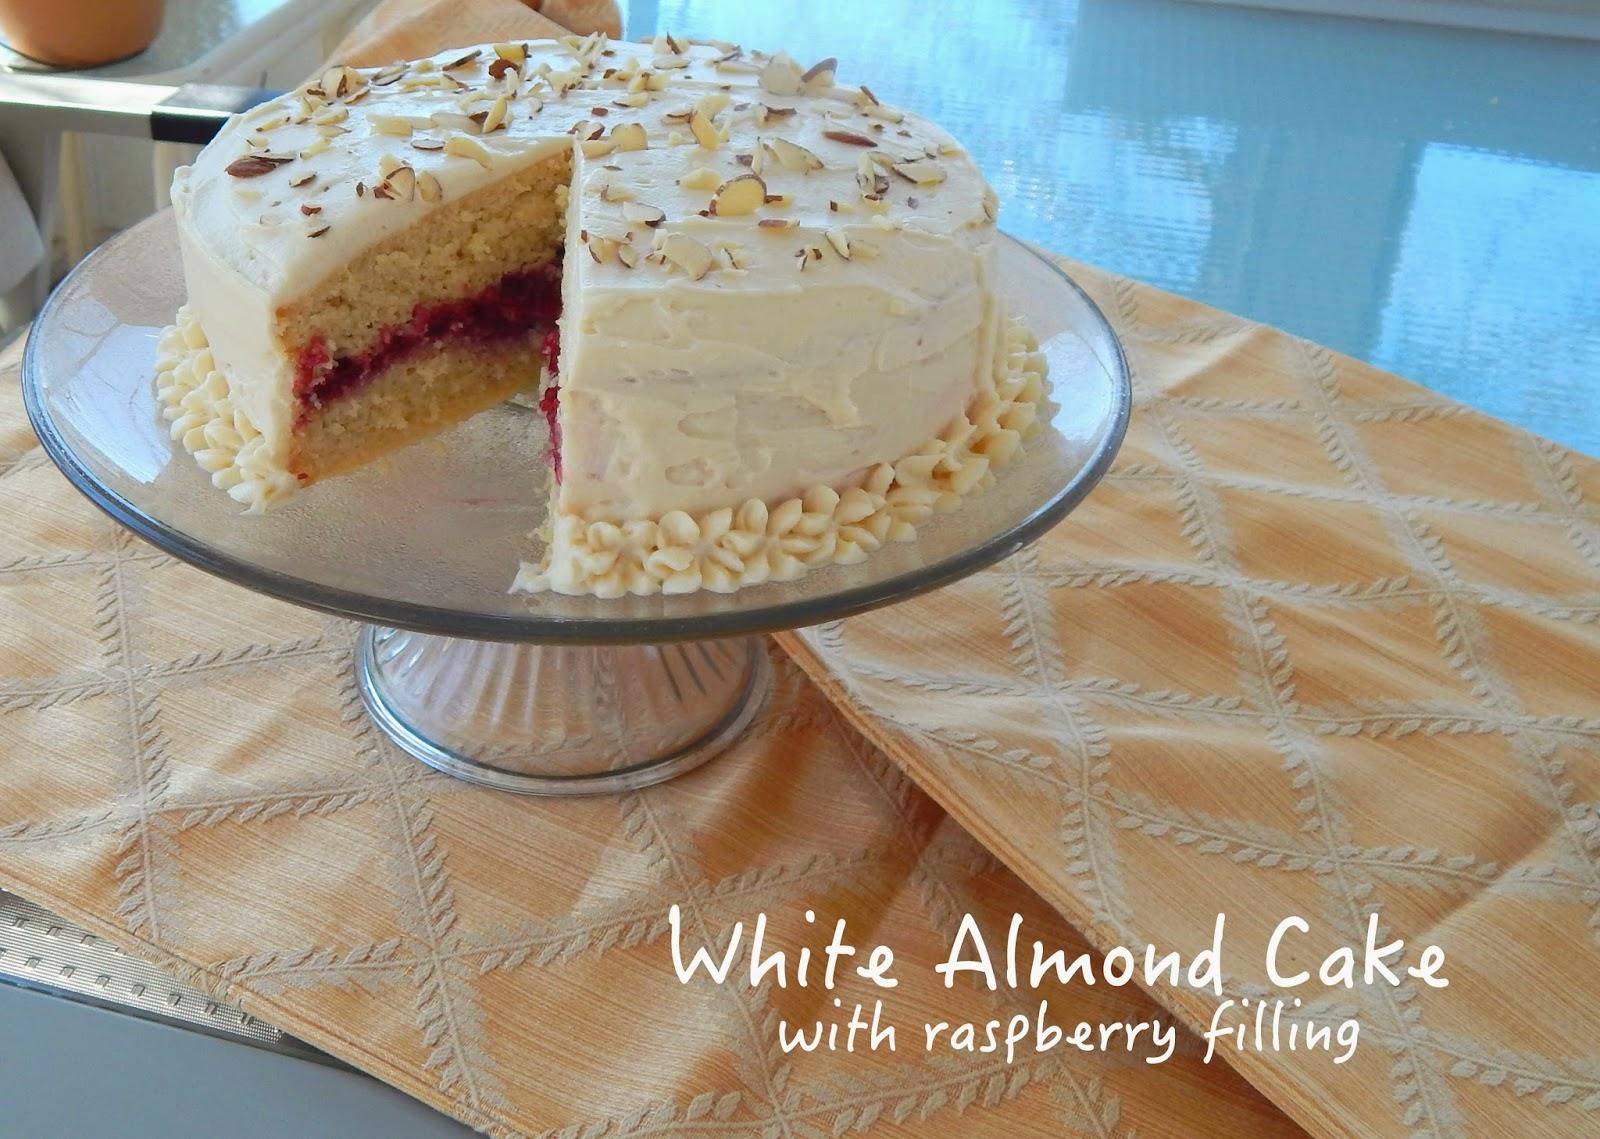 White Almond Cake With Raspberry Filling